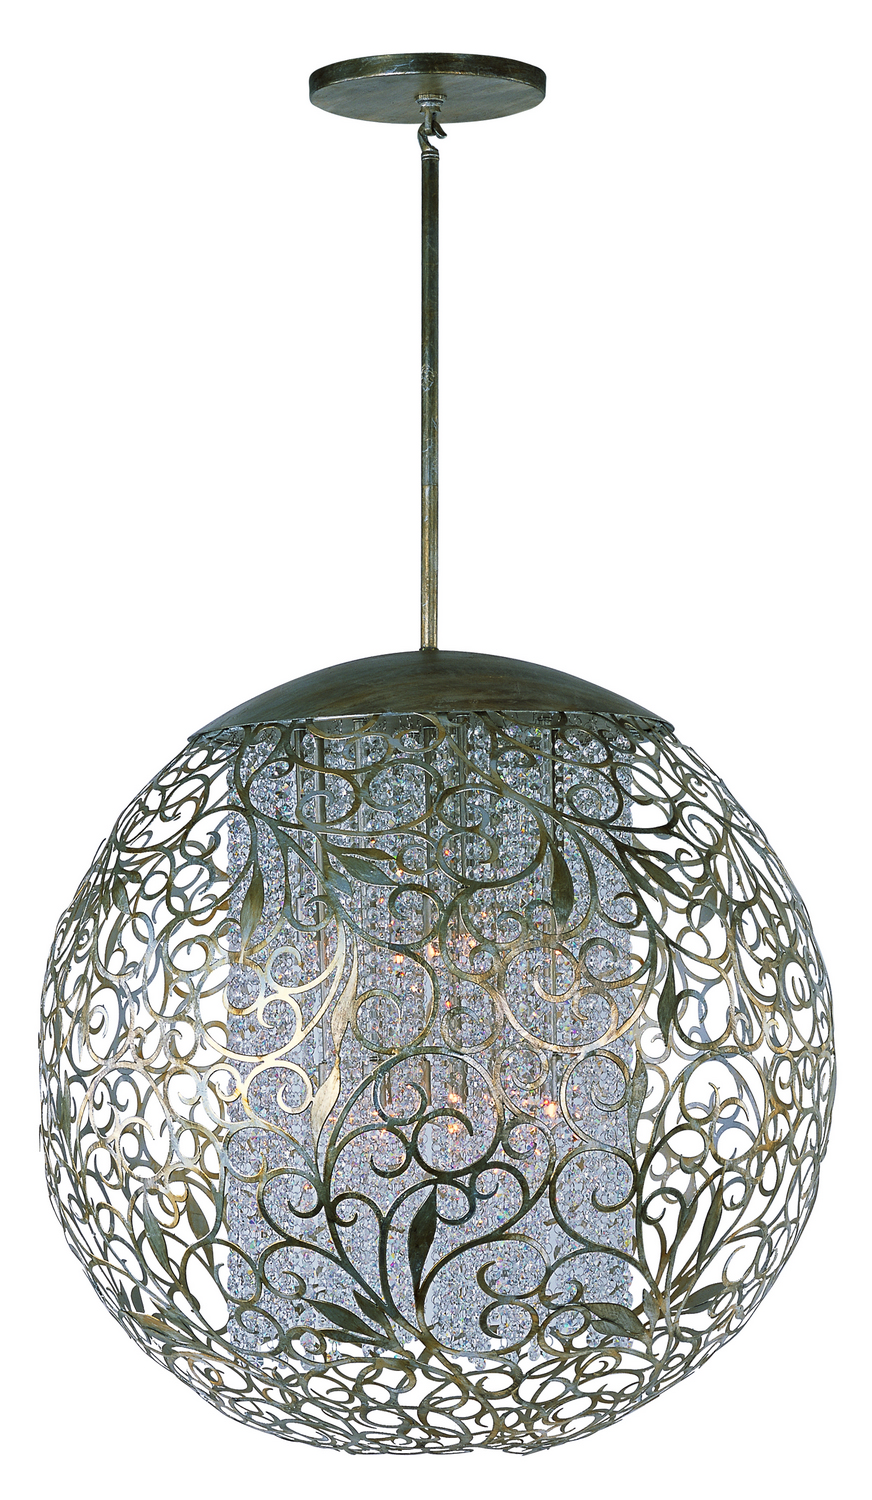 13 Light Pendant from the Arabesque collection by Maxim 24159BCGS